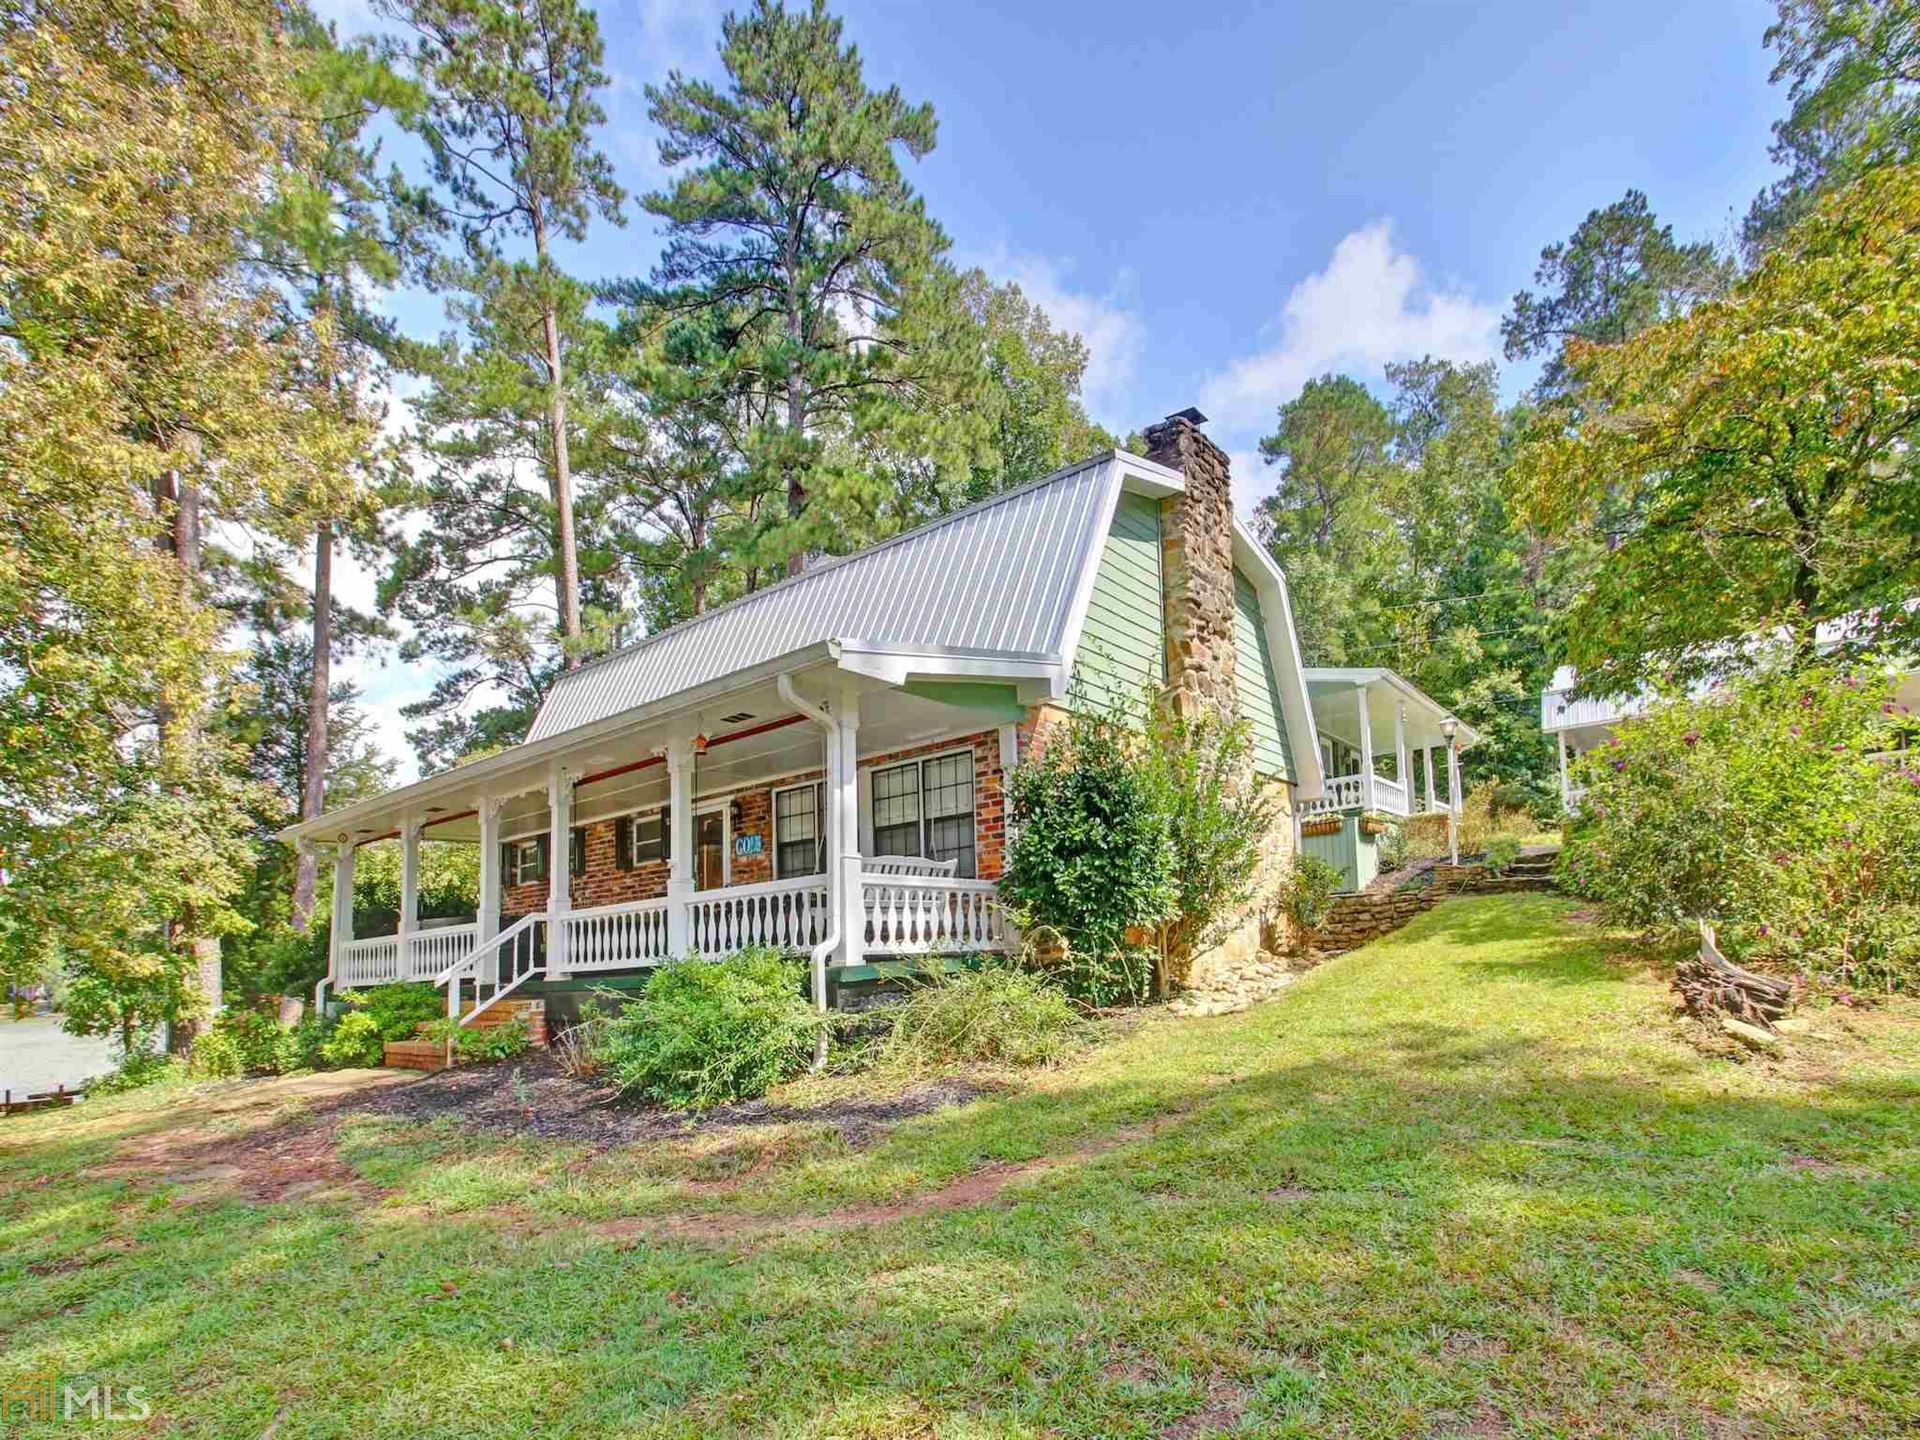 1281 Wendy Hill Rd, Monticello, GA 31064 - MLS#: 8864051